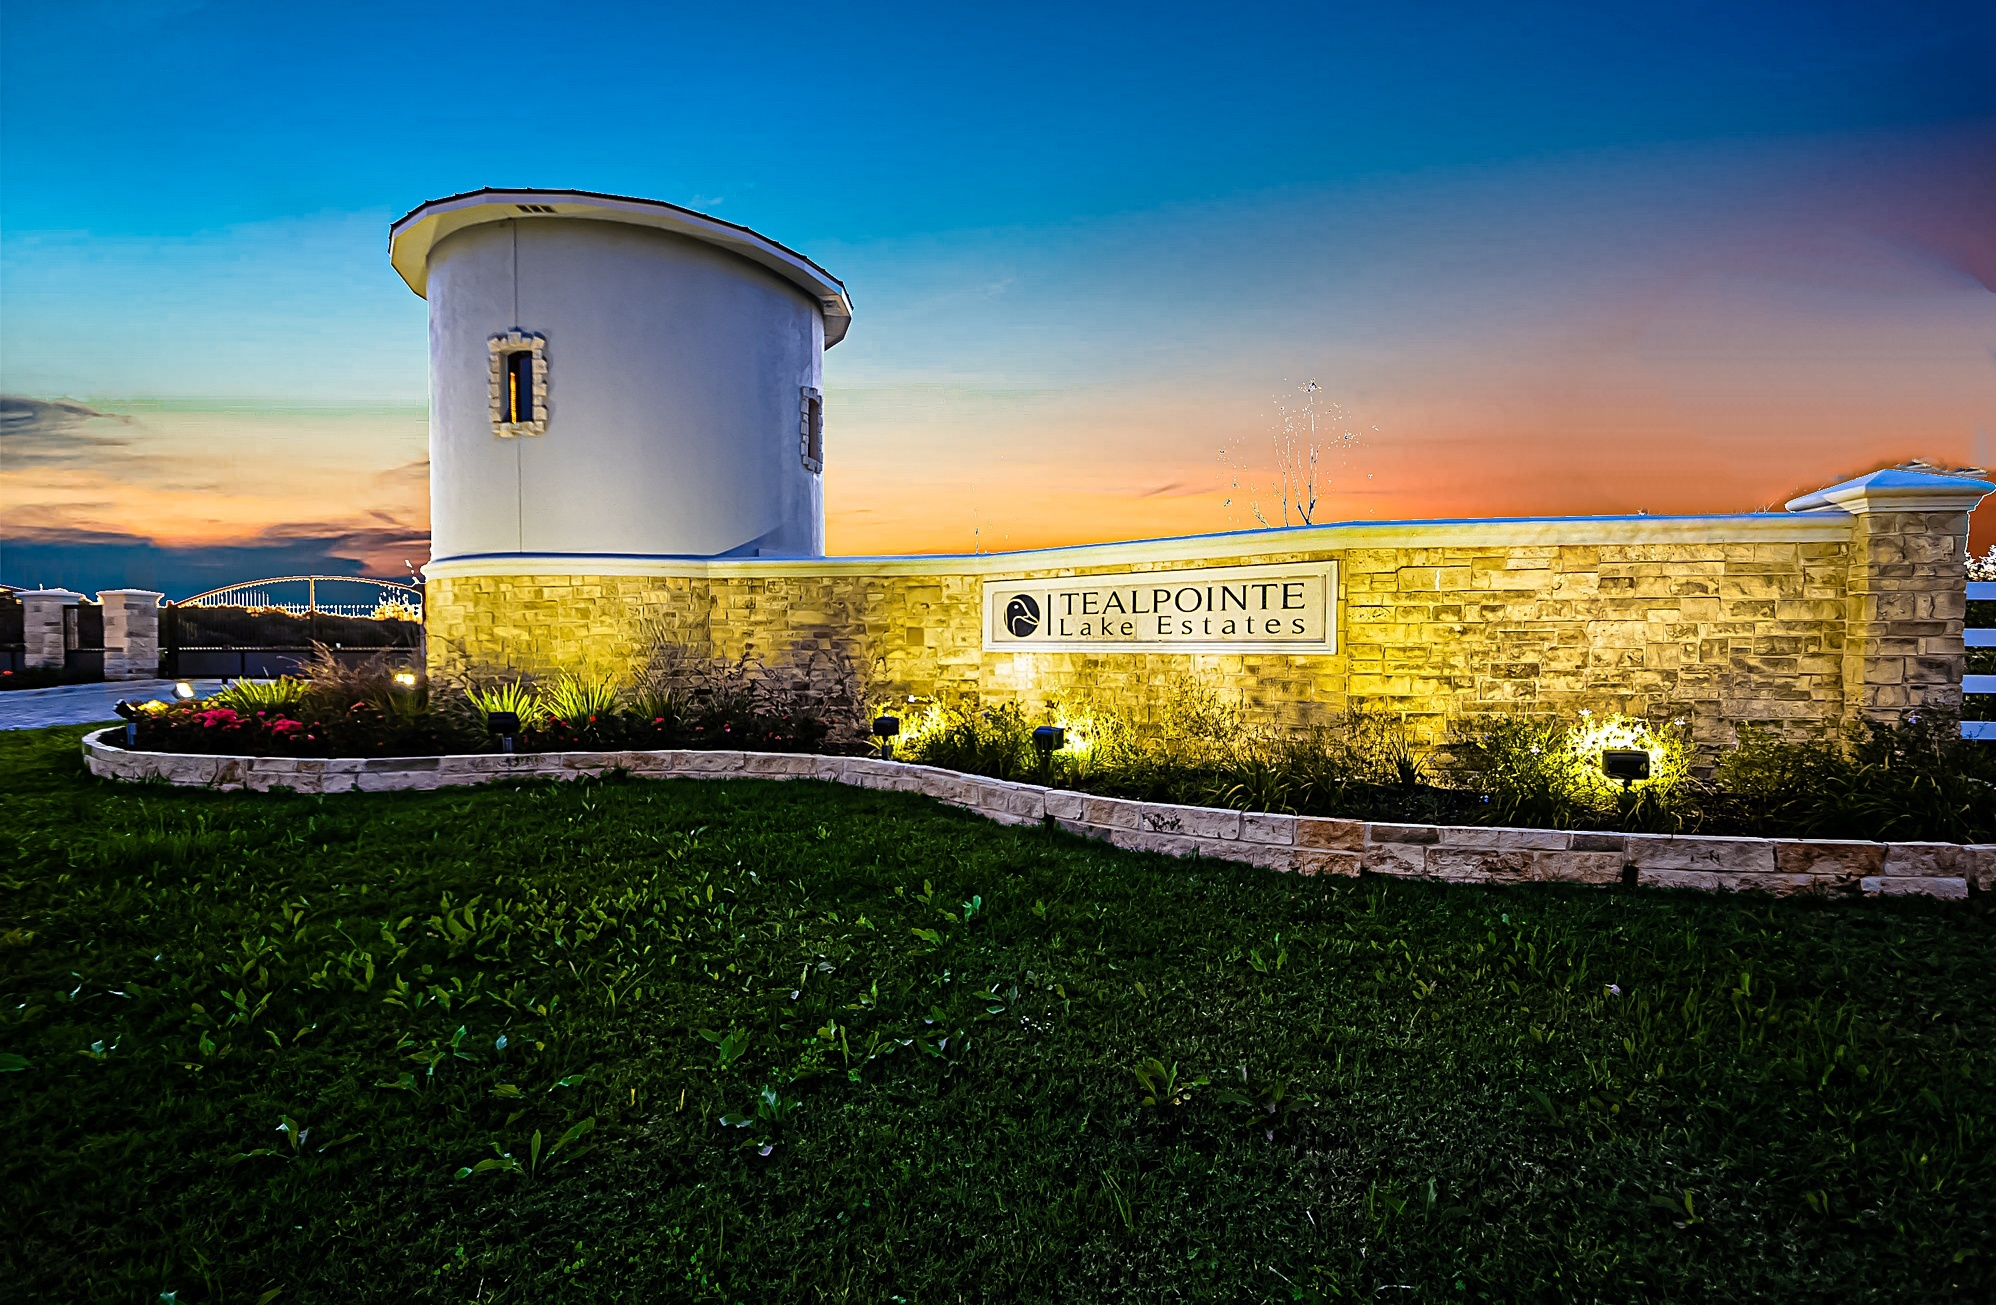 Tealpointe Lake Estates - One of the Best Communities to Live in Tomball